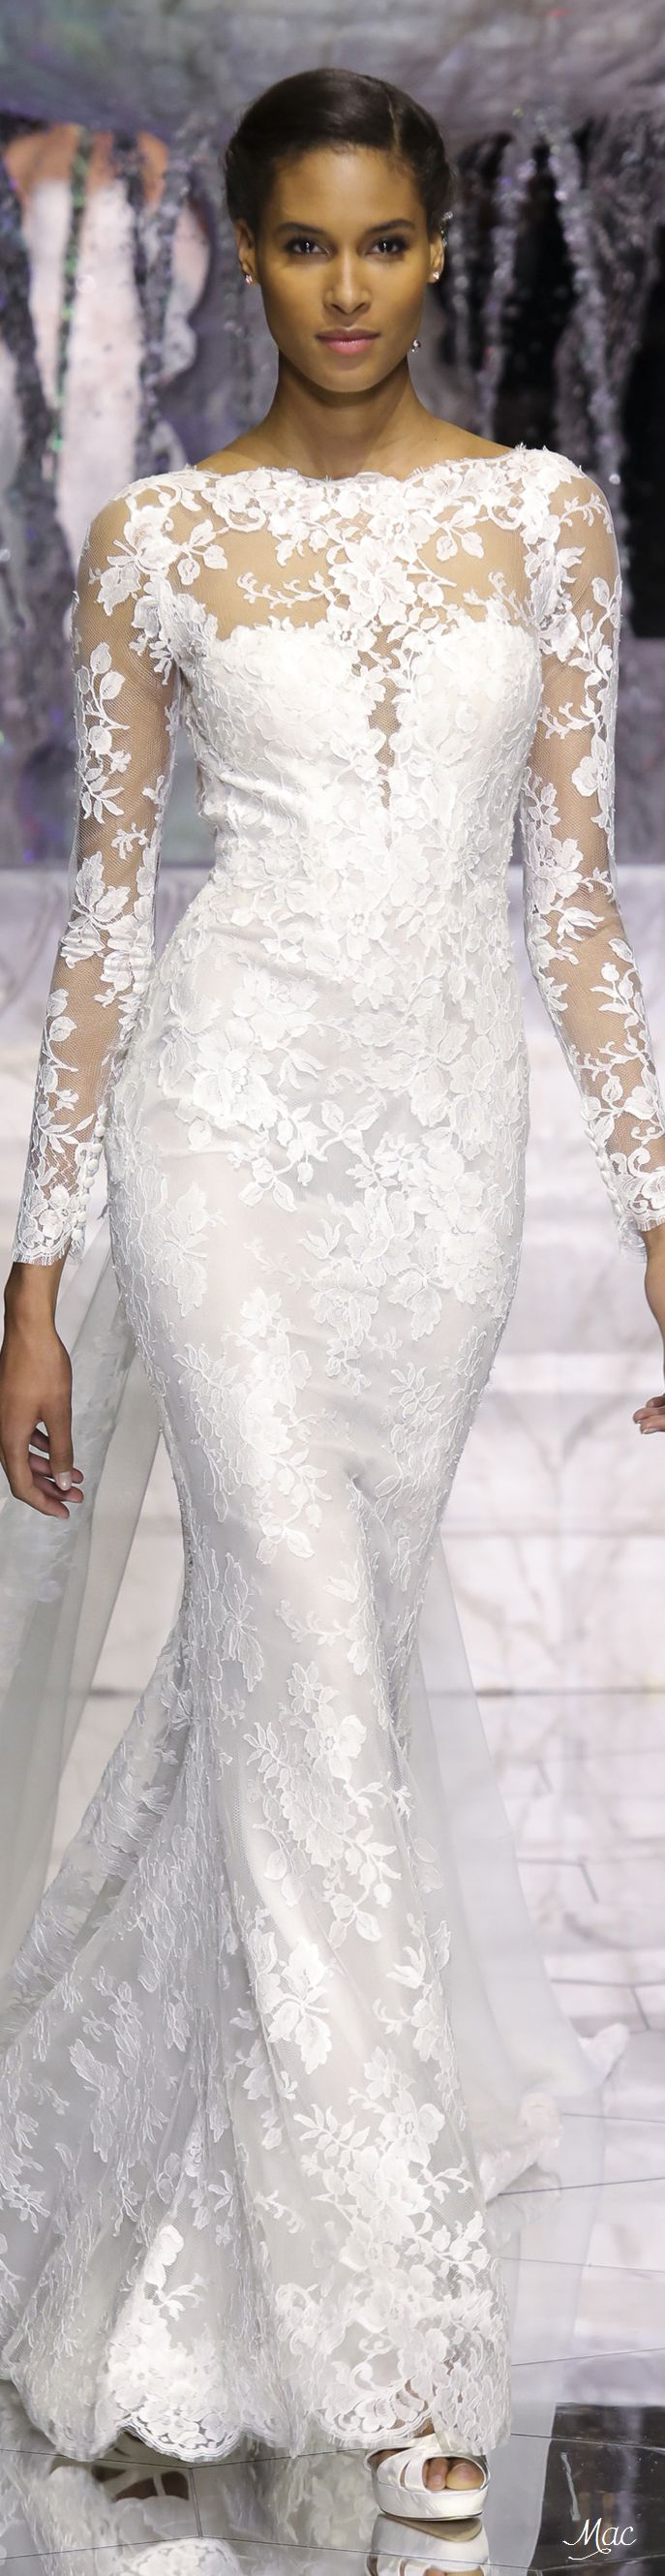 Spring bridal pronovias wedding dresses pinterest